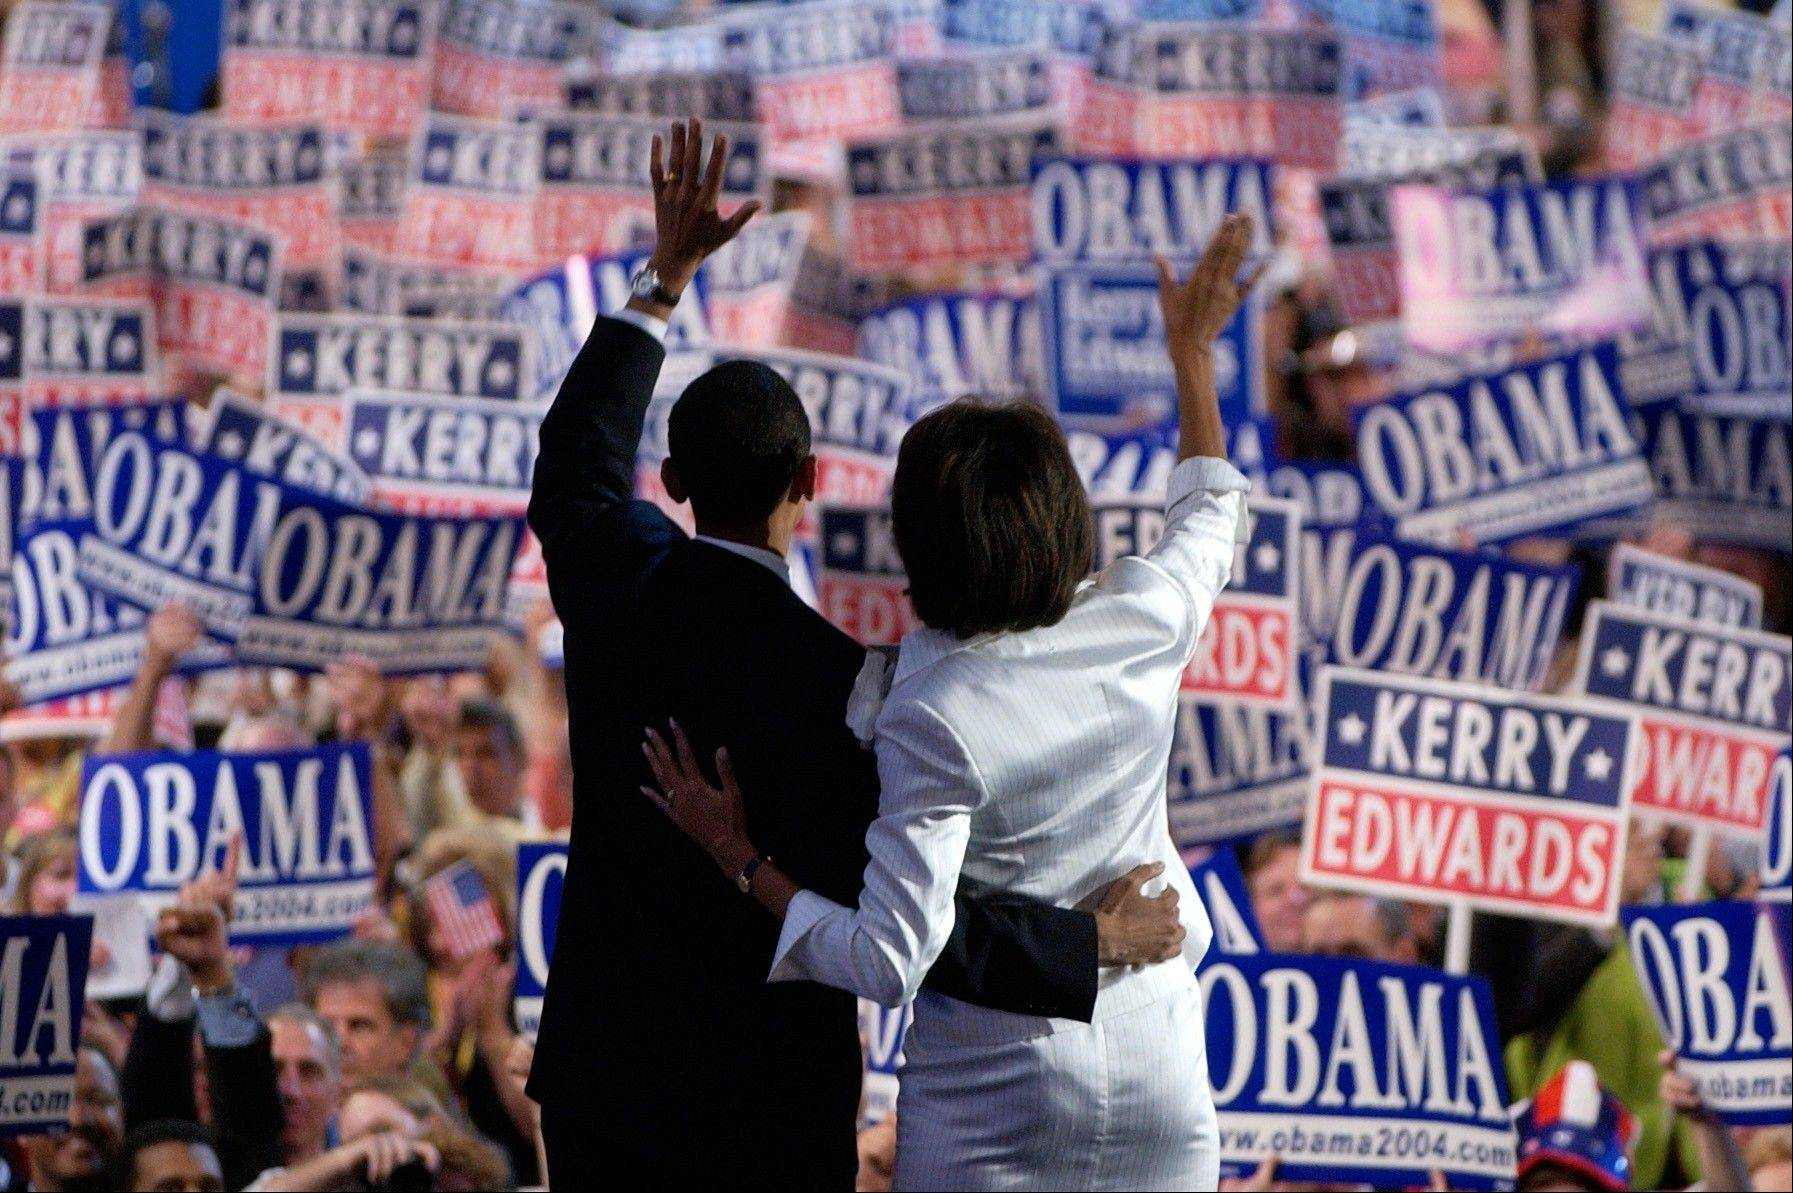 In this July 27, 2004, file photo,Barack Obama, candidate for U.S. Senate from Illinois, and his wife Michelle wave to delegates after he delivered his keynote address to the Democratic National Convention in Boston in this July 27, 2004, file photo. She is 5-foot-11, and she is world-famous. Sometimes she inspires awe in her admirers. She has been accused of being the angry type. So when Michelle Obama meets people, she likes to bring things down to earth with a hug.